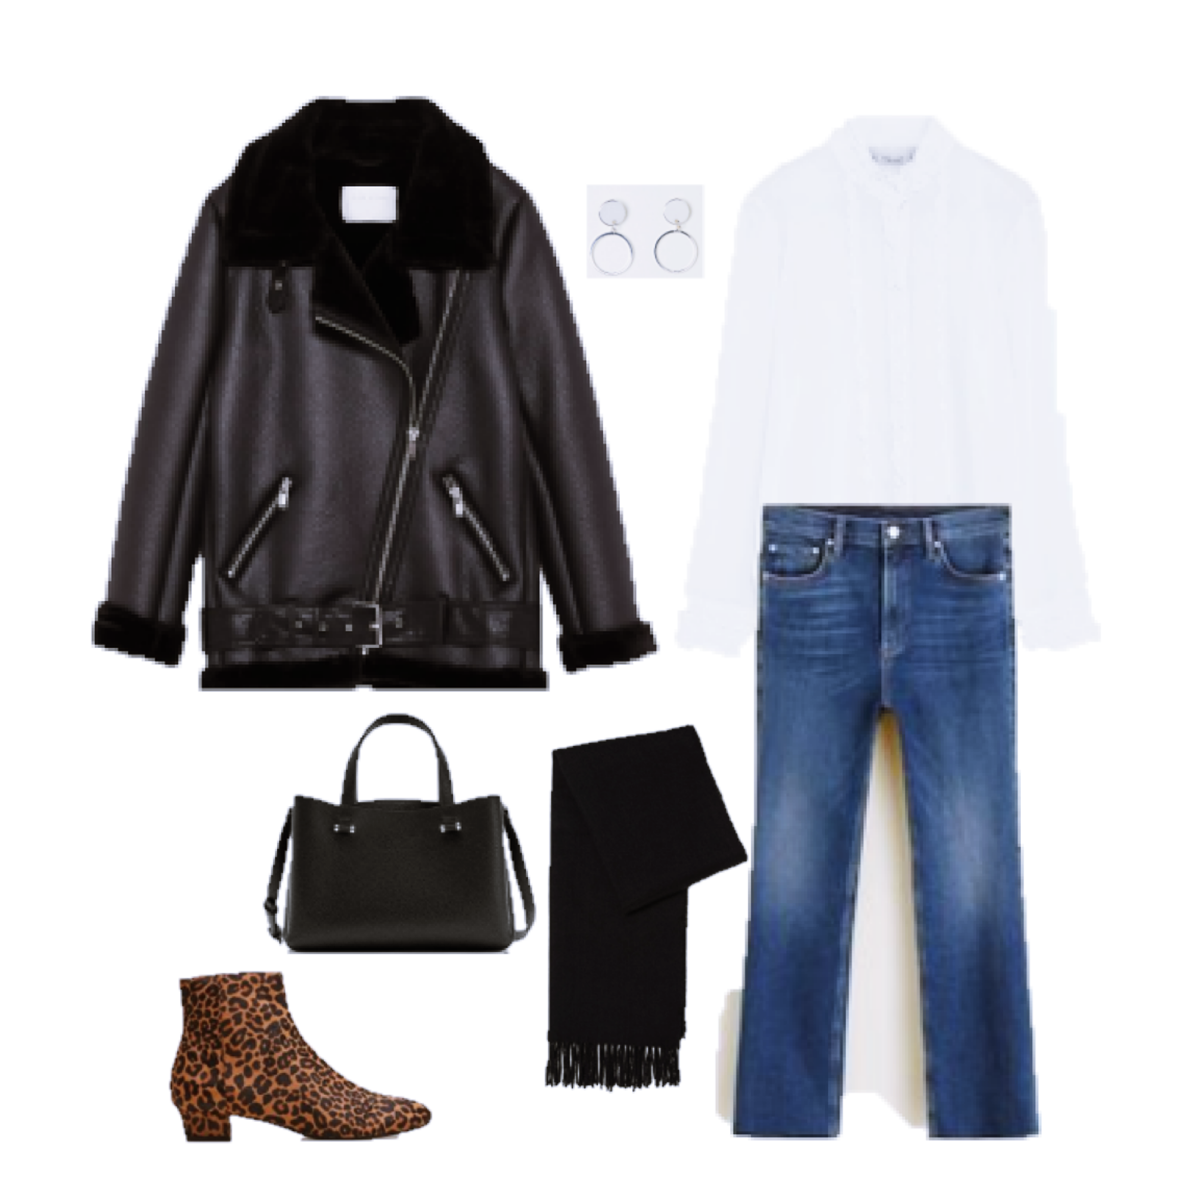 Outfit of the Day: a white Blouse, Leather and Leopard print